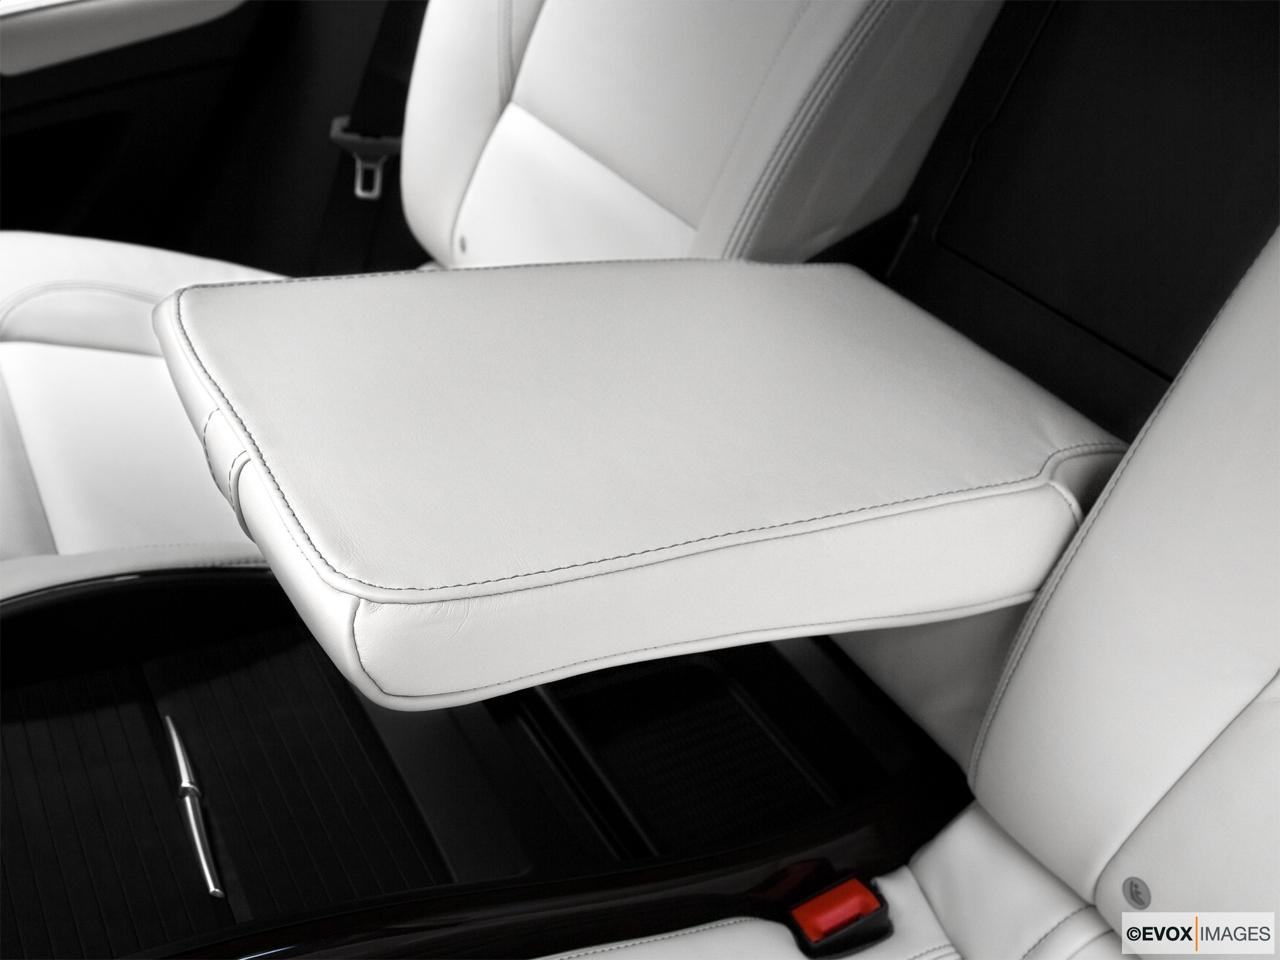 2010 BMW X6 Hybrid Base Rear center console with closed lid from driver's side looking down.